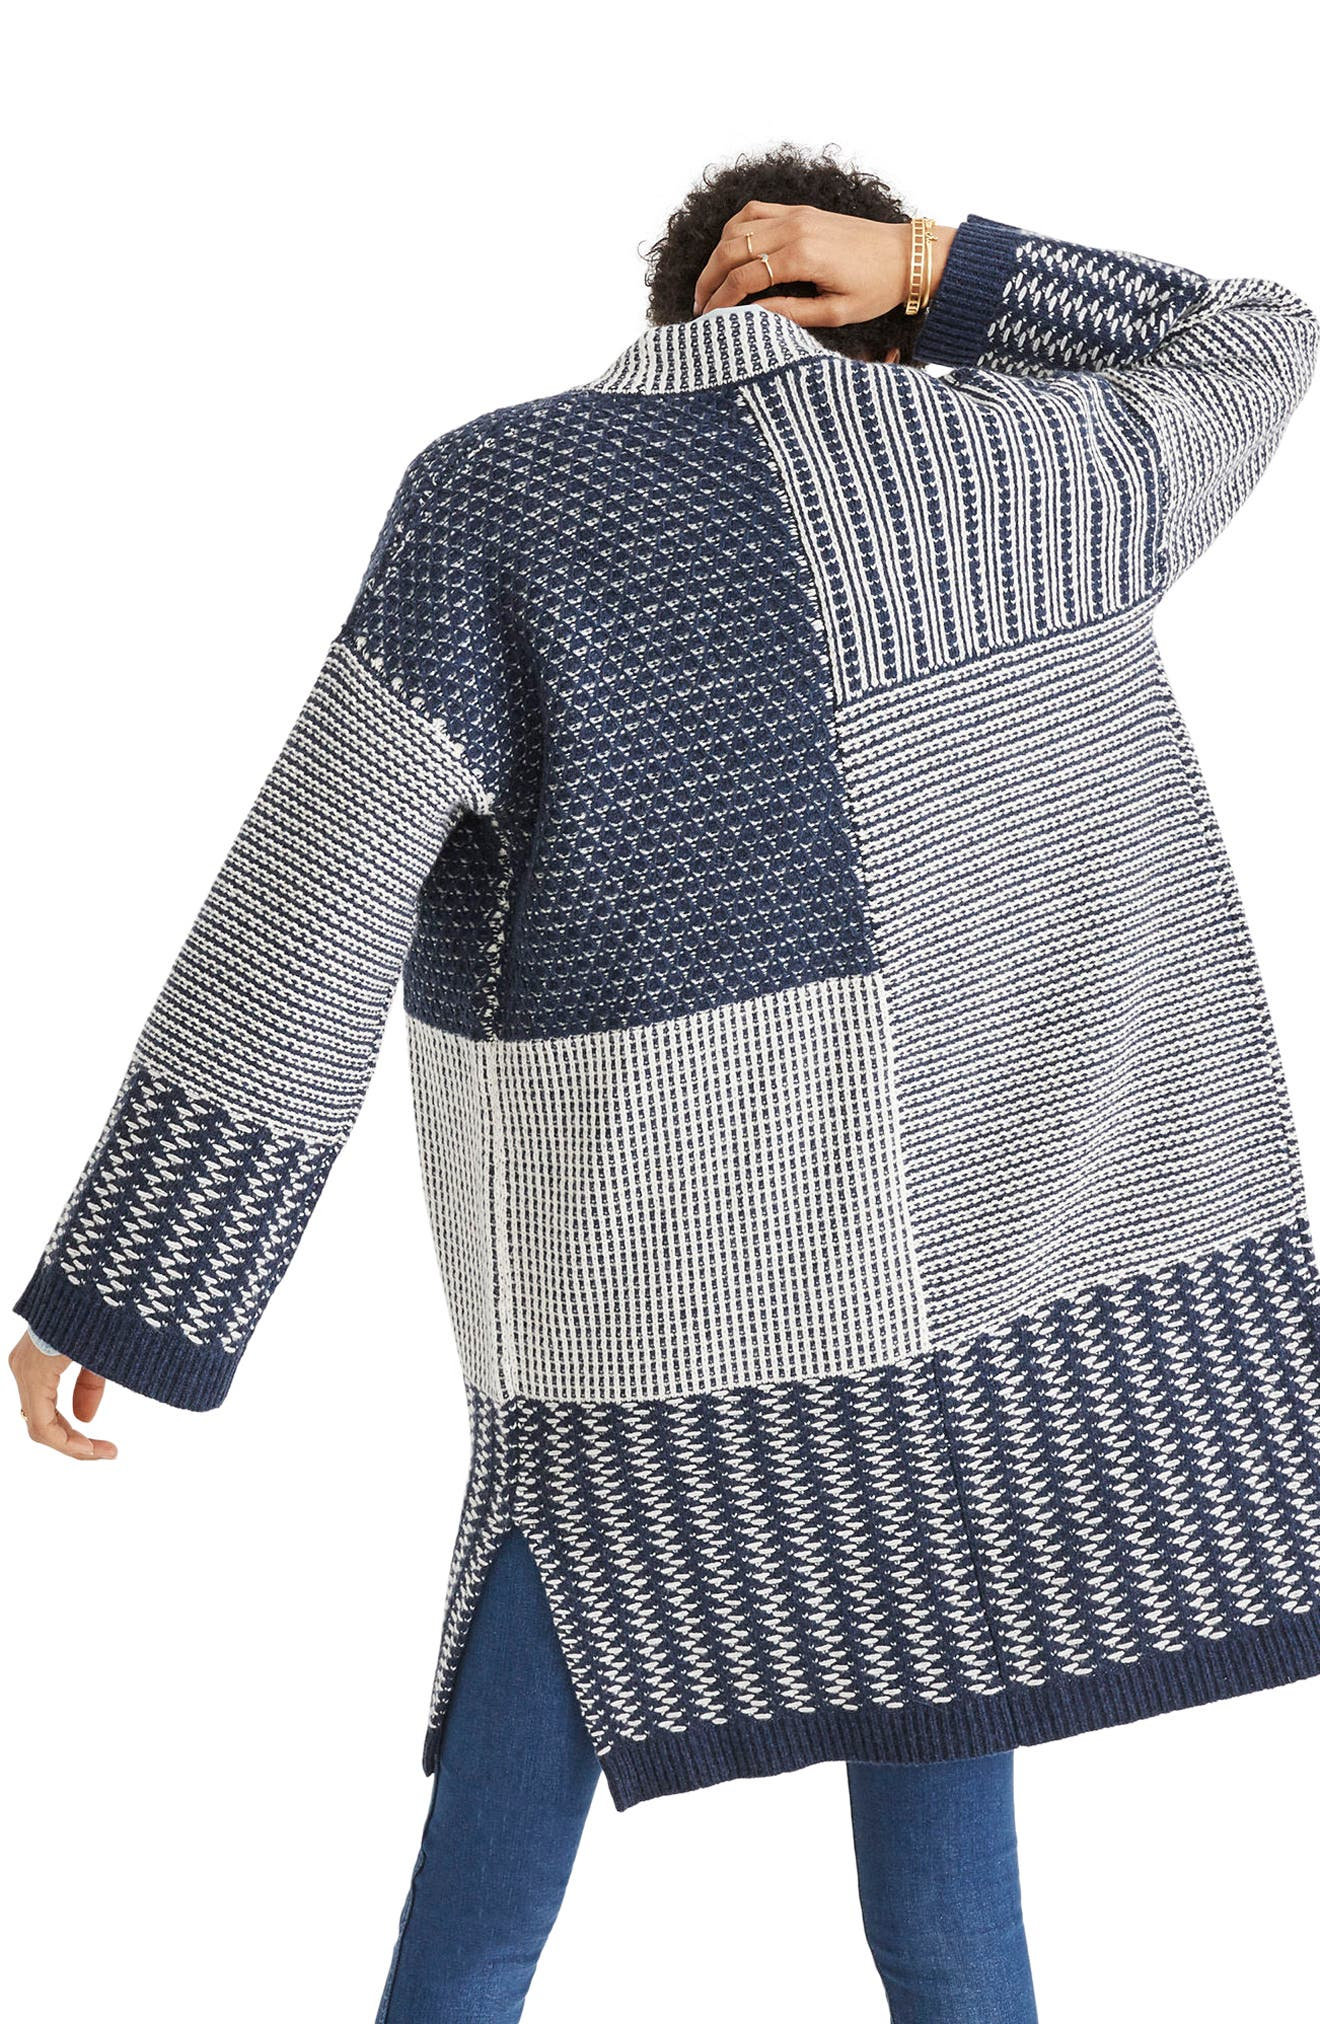 Patchwork Collage Cardigan,                             Alternate thumbnail 2, color,                             490